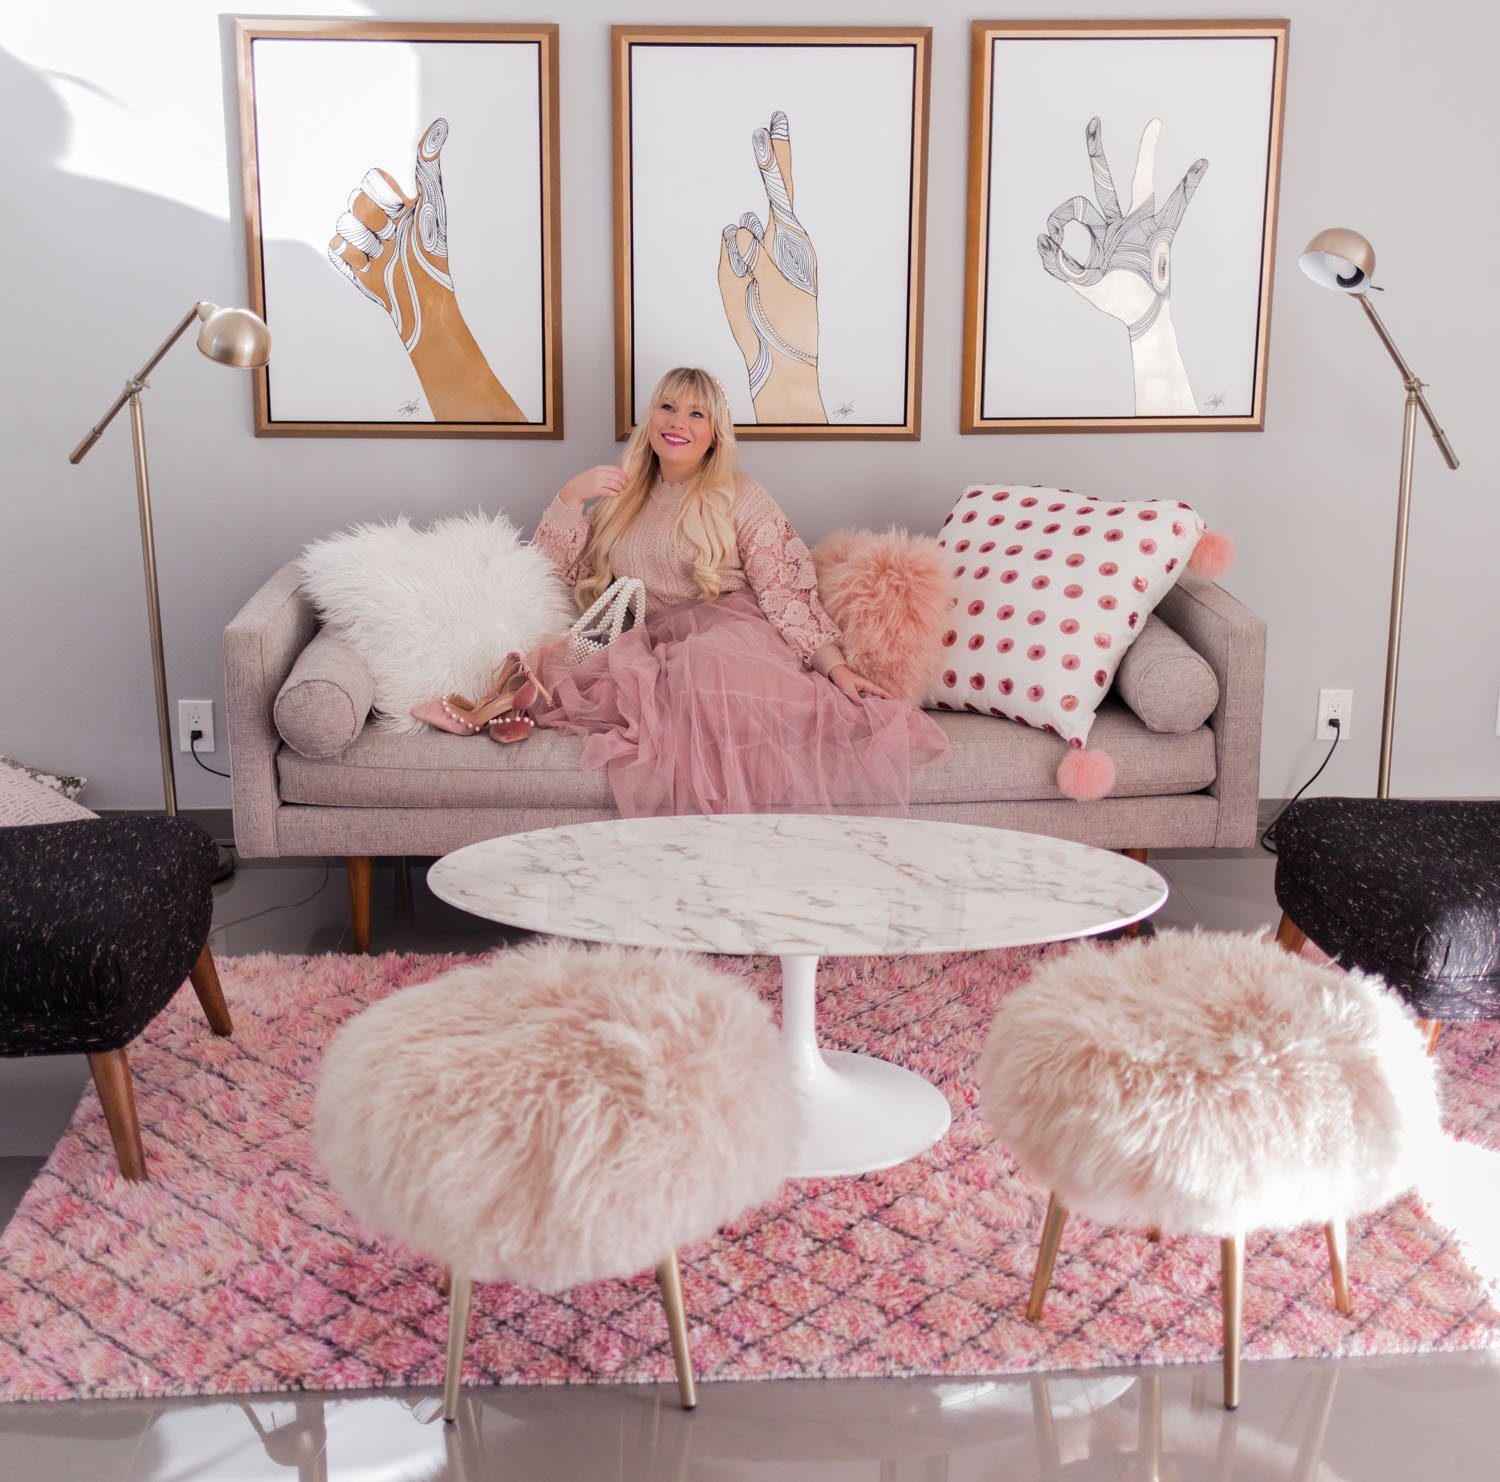 Elizabeth Hugen of Lizzie in Lace shares where to stay in Palm Springs